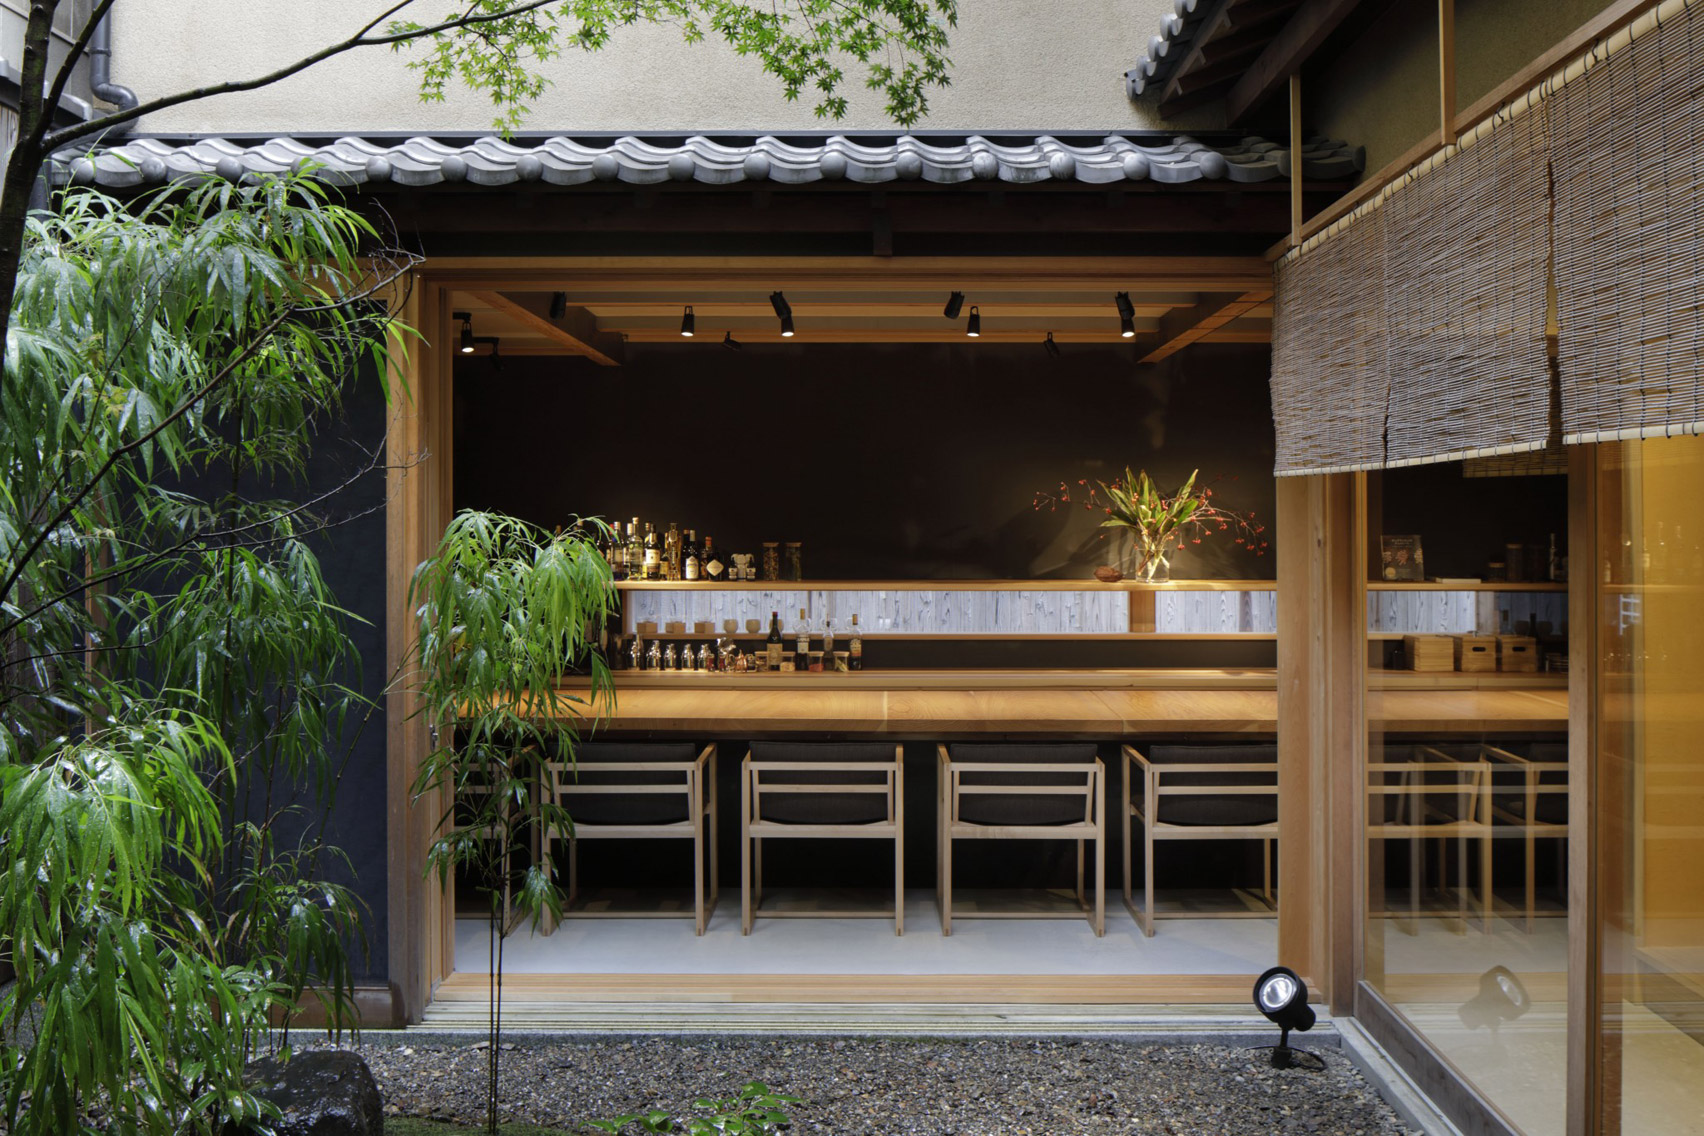 Cedar and cacao infuse the interiors of Kyoto's Dandelion Chocolate cafe